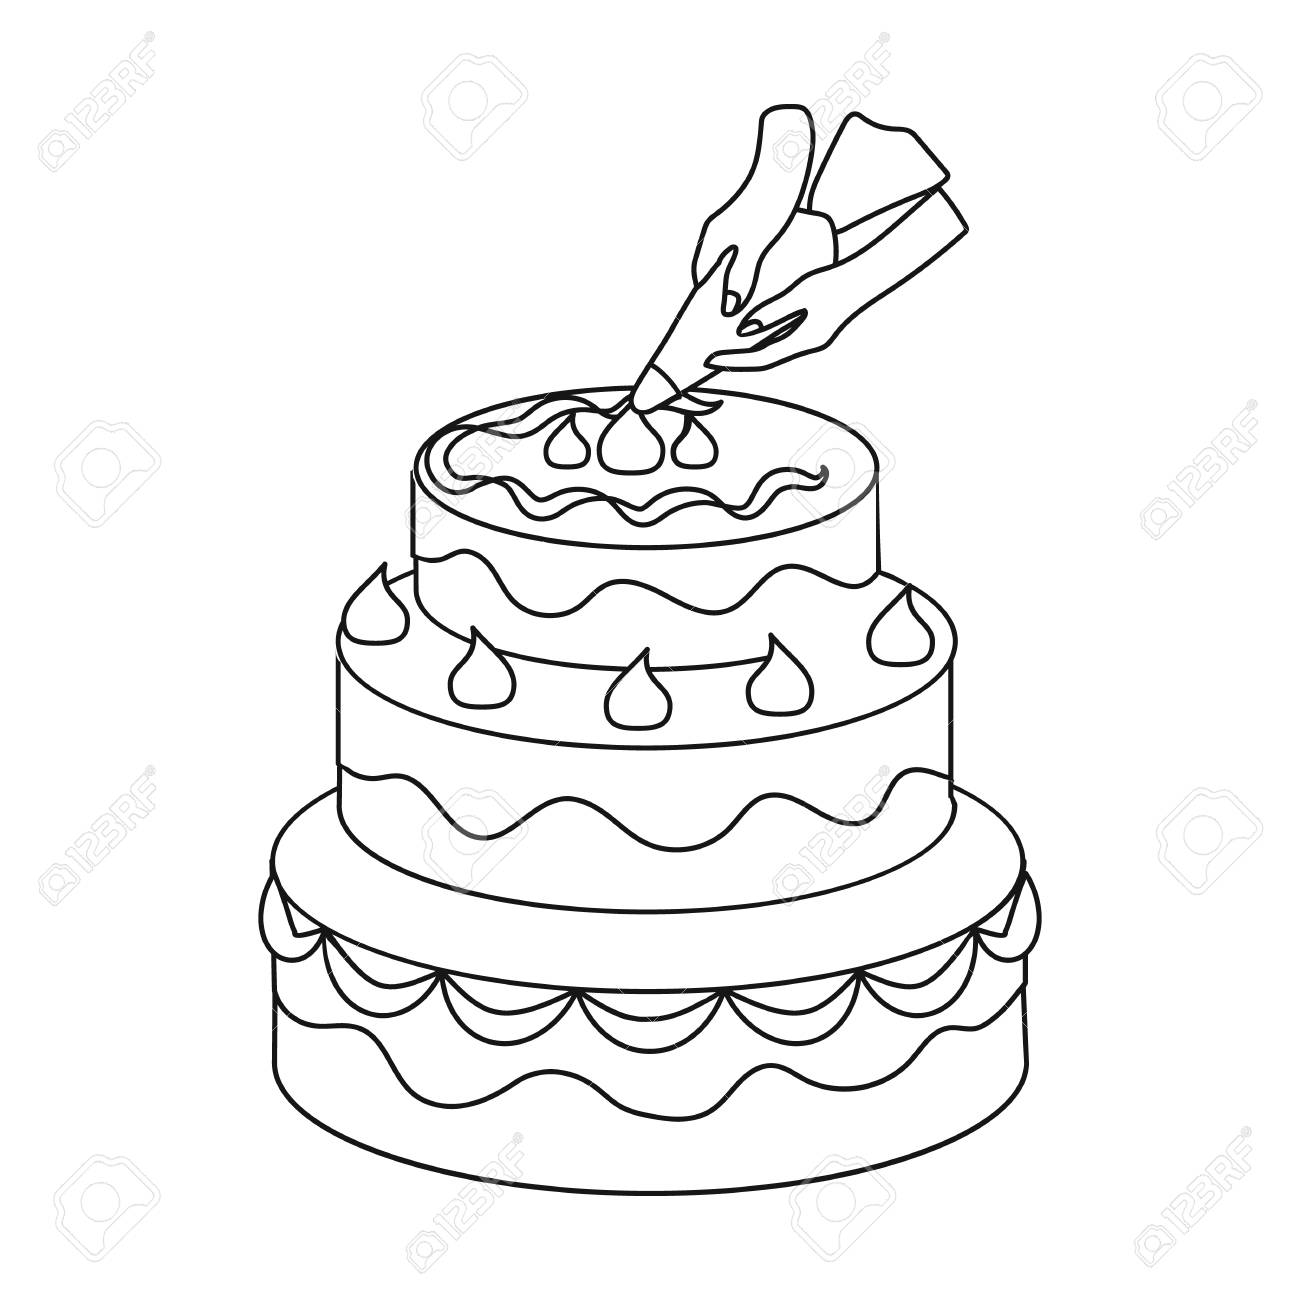 Decorating Of Birthday Cake Icon In Outline Style Isolated On